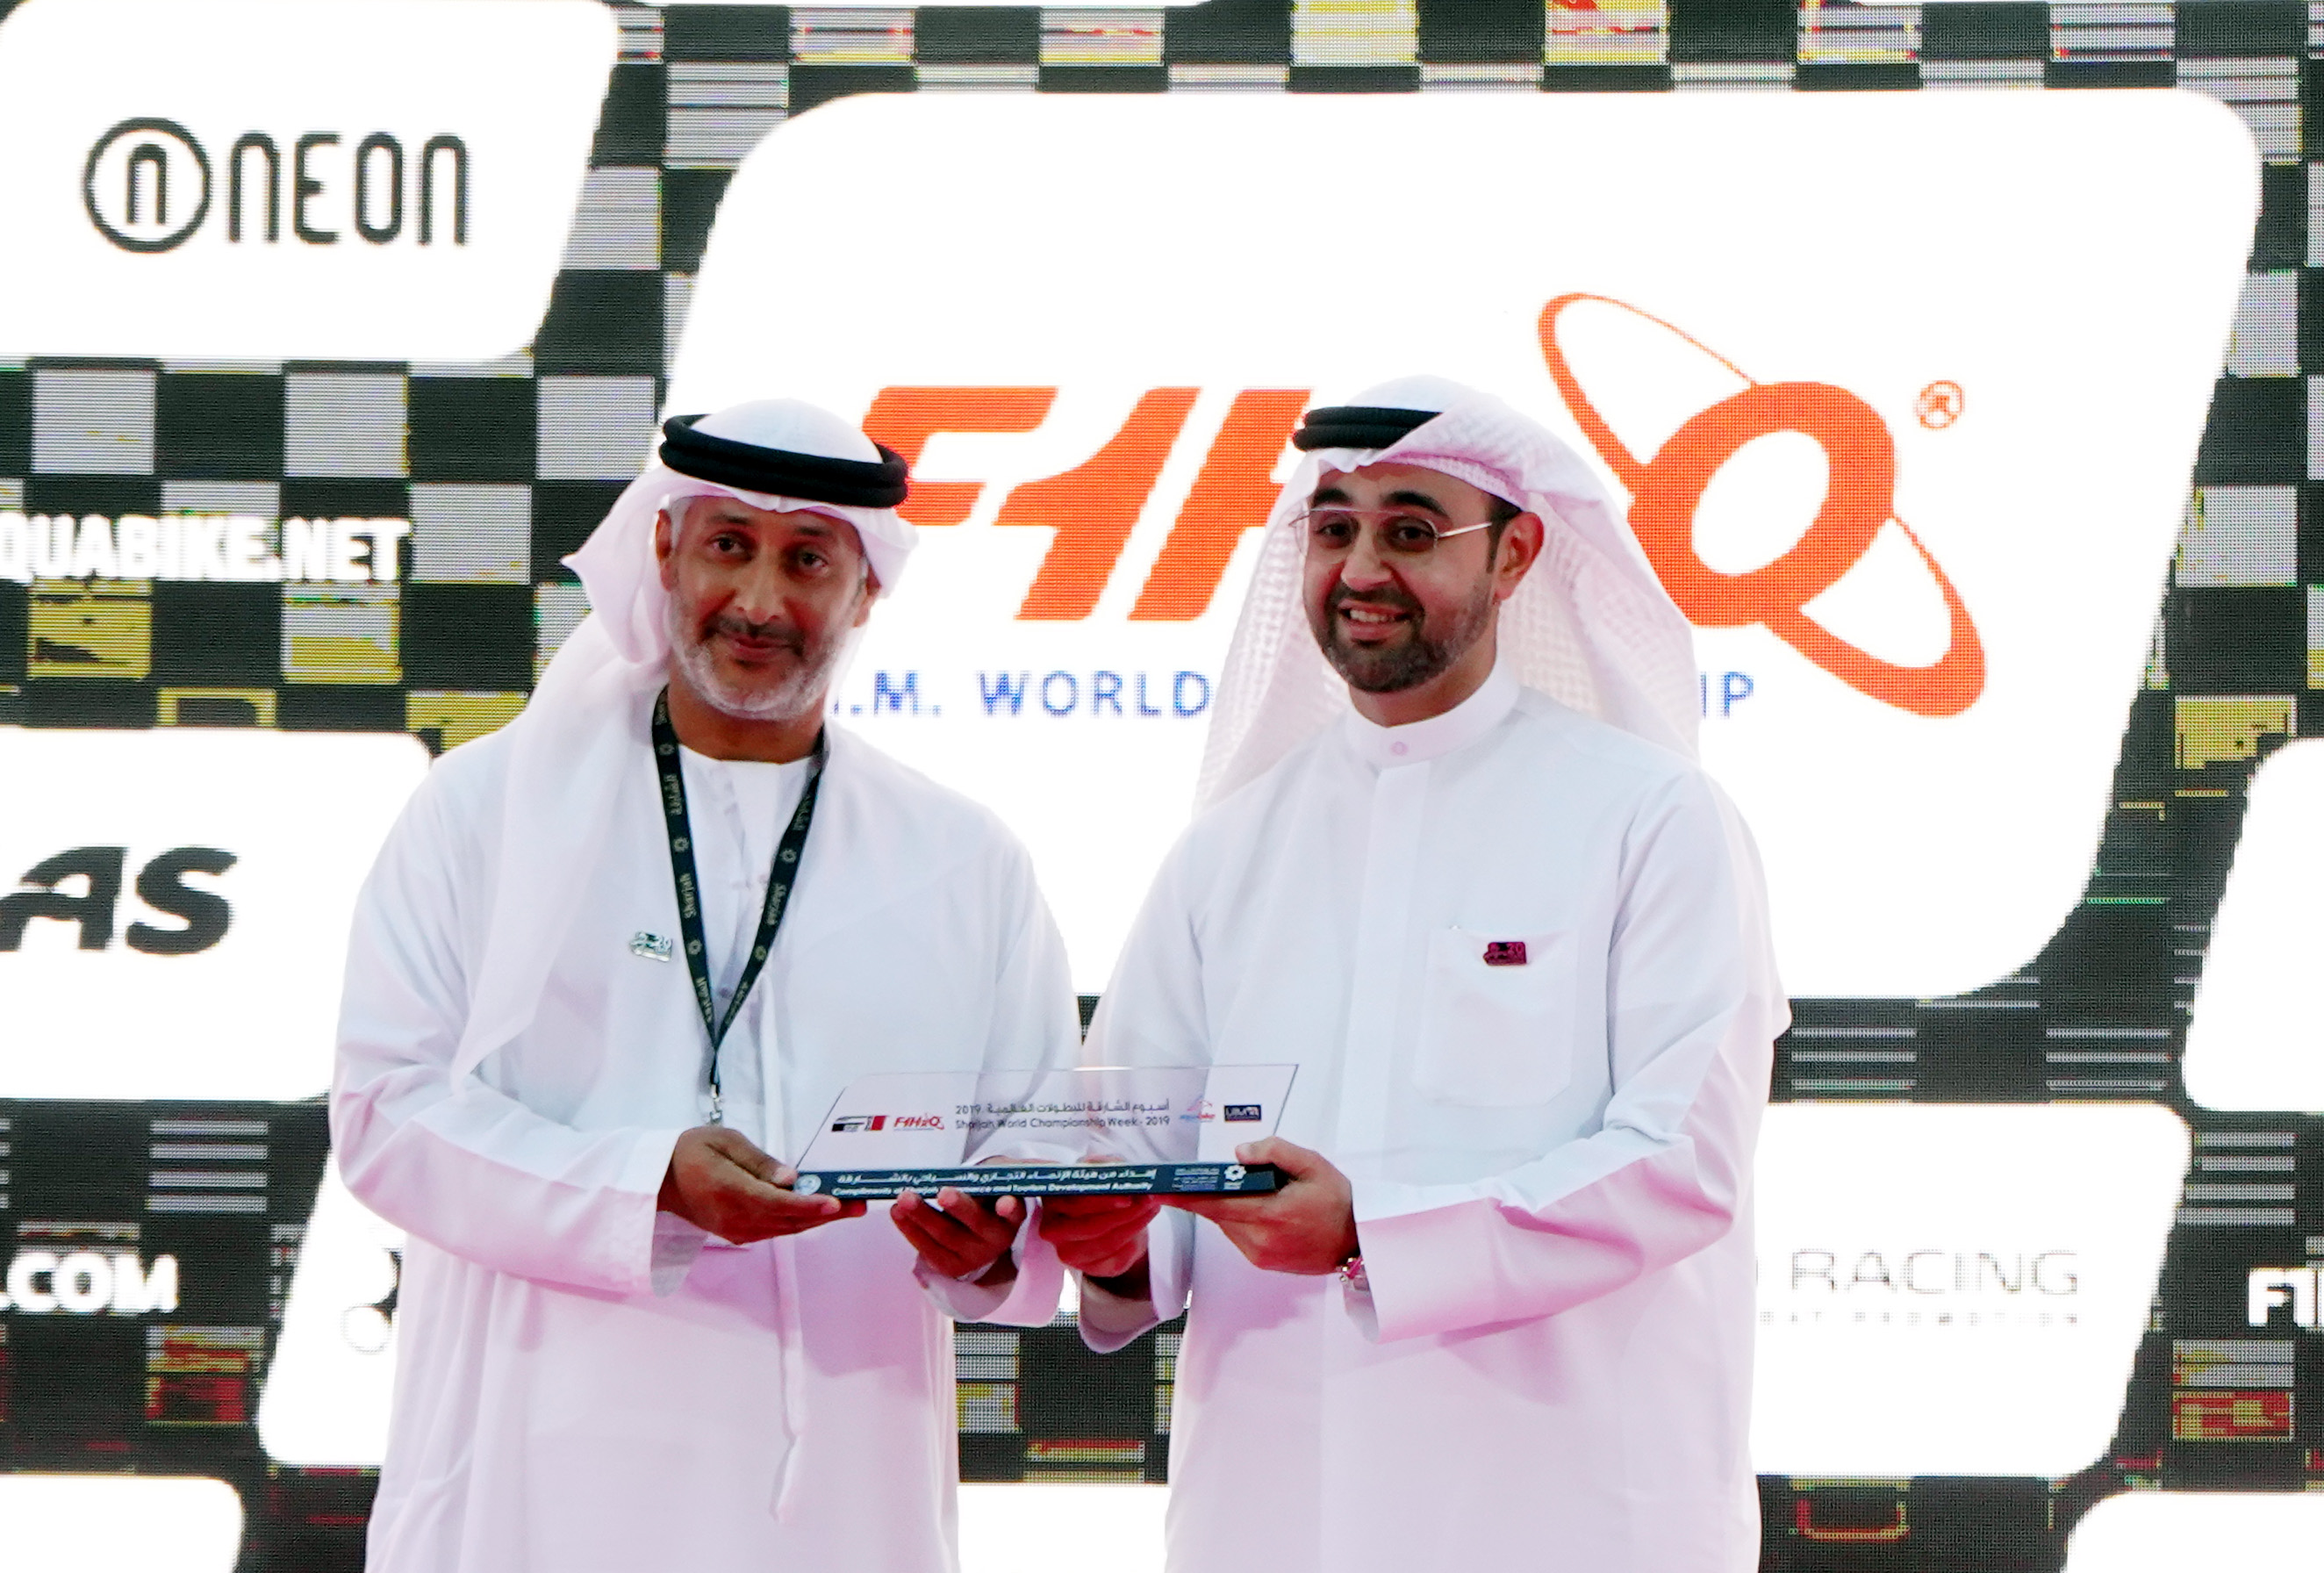 DIMC receives an organizational trophy in honor of the Sharjah World Championship Week